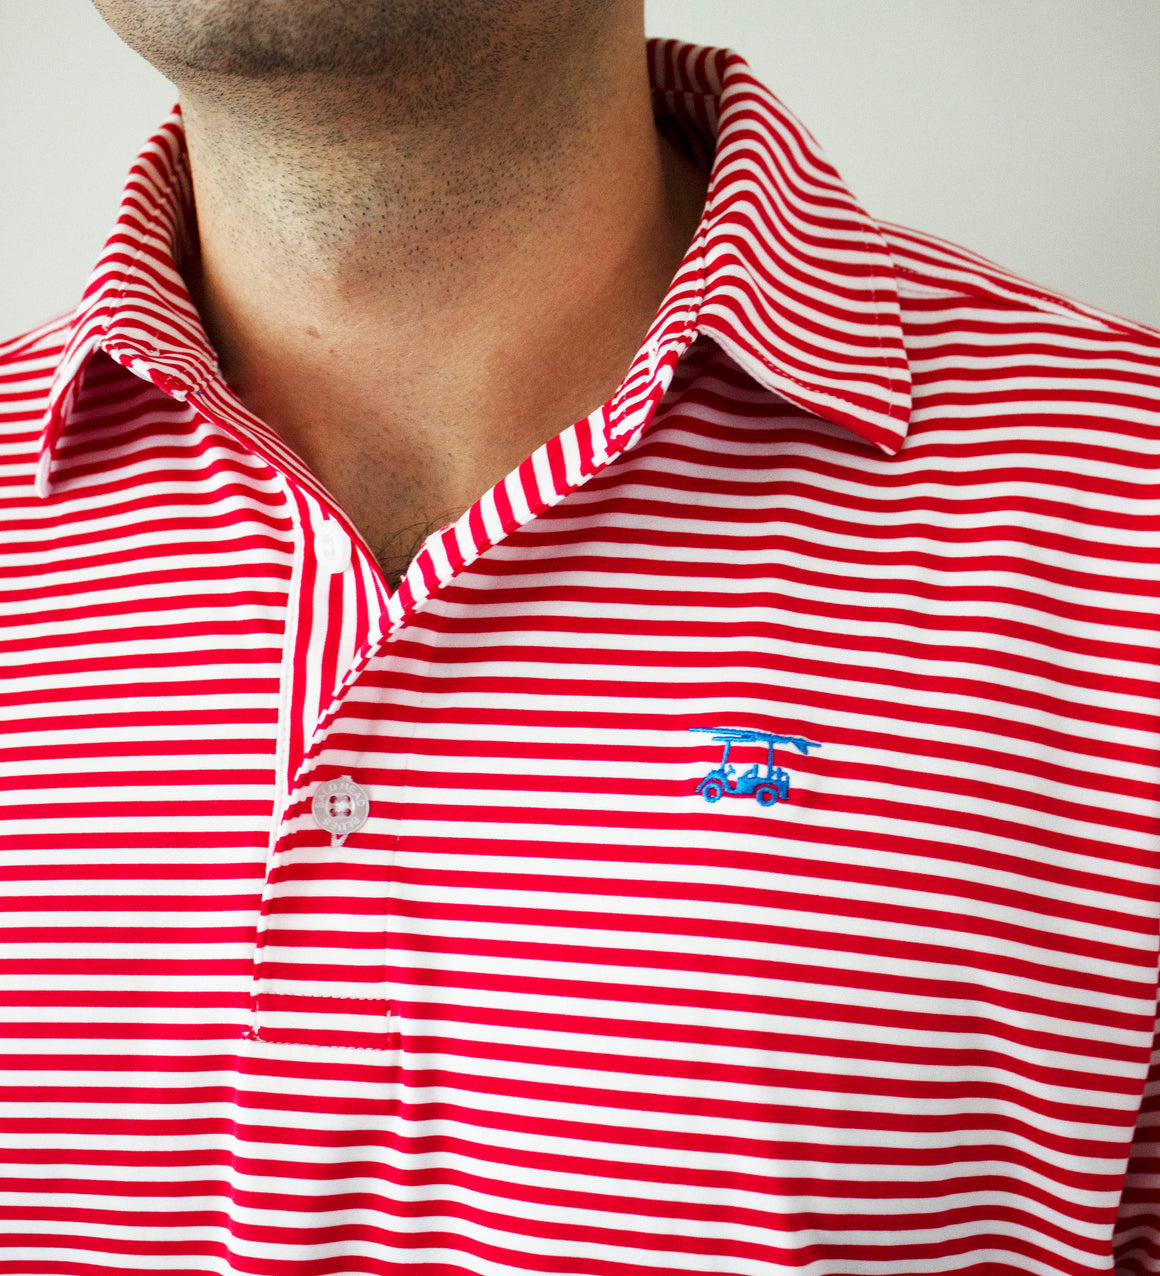 NEW Albatross Polo - State Red / White Stripes